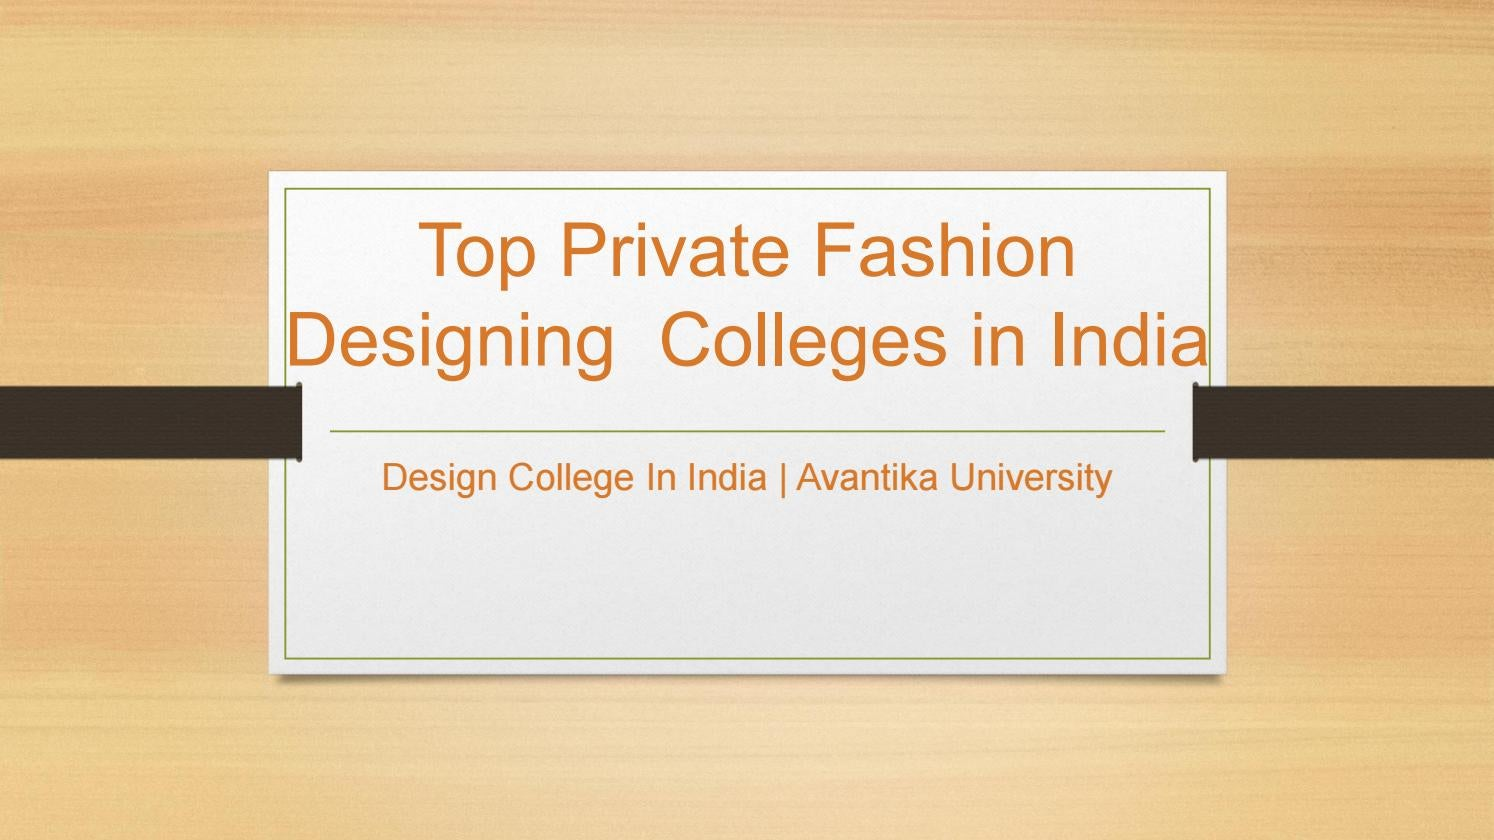 Top Private Fashion Designing Colleges In India Avantika University By Avantika University Issuu